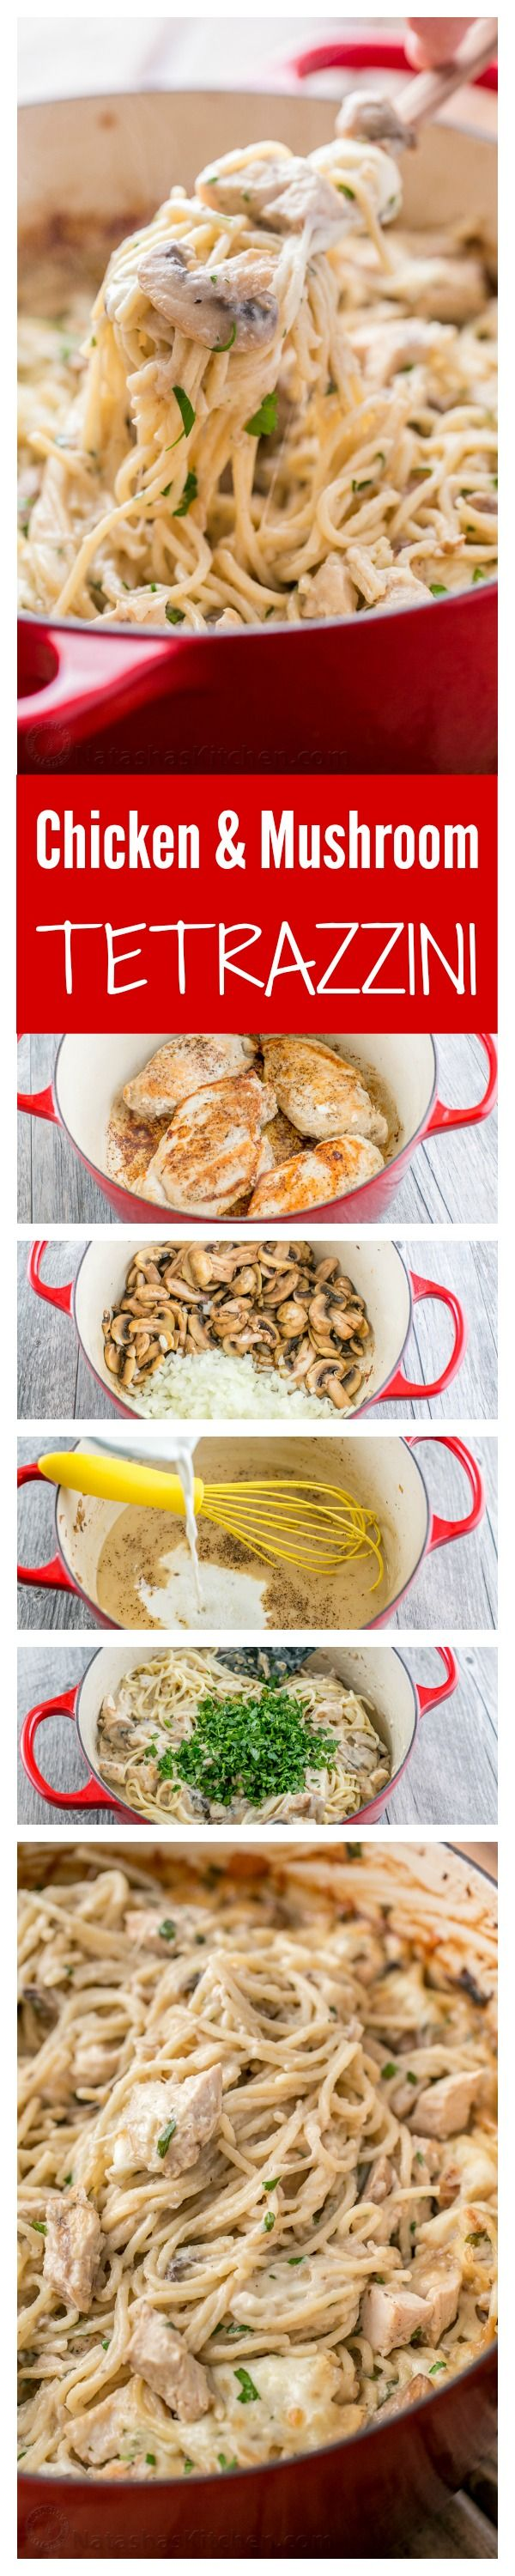 Chicken Tetrazzini is a comforting, cheesy, supremely creamy chicken pasta bake. This chicken pasta casserole will have your family refilling their bowls!